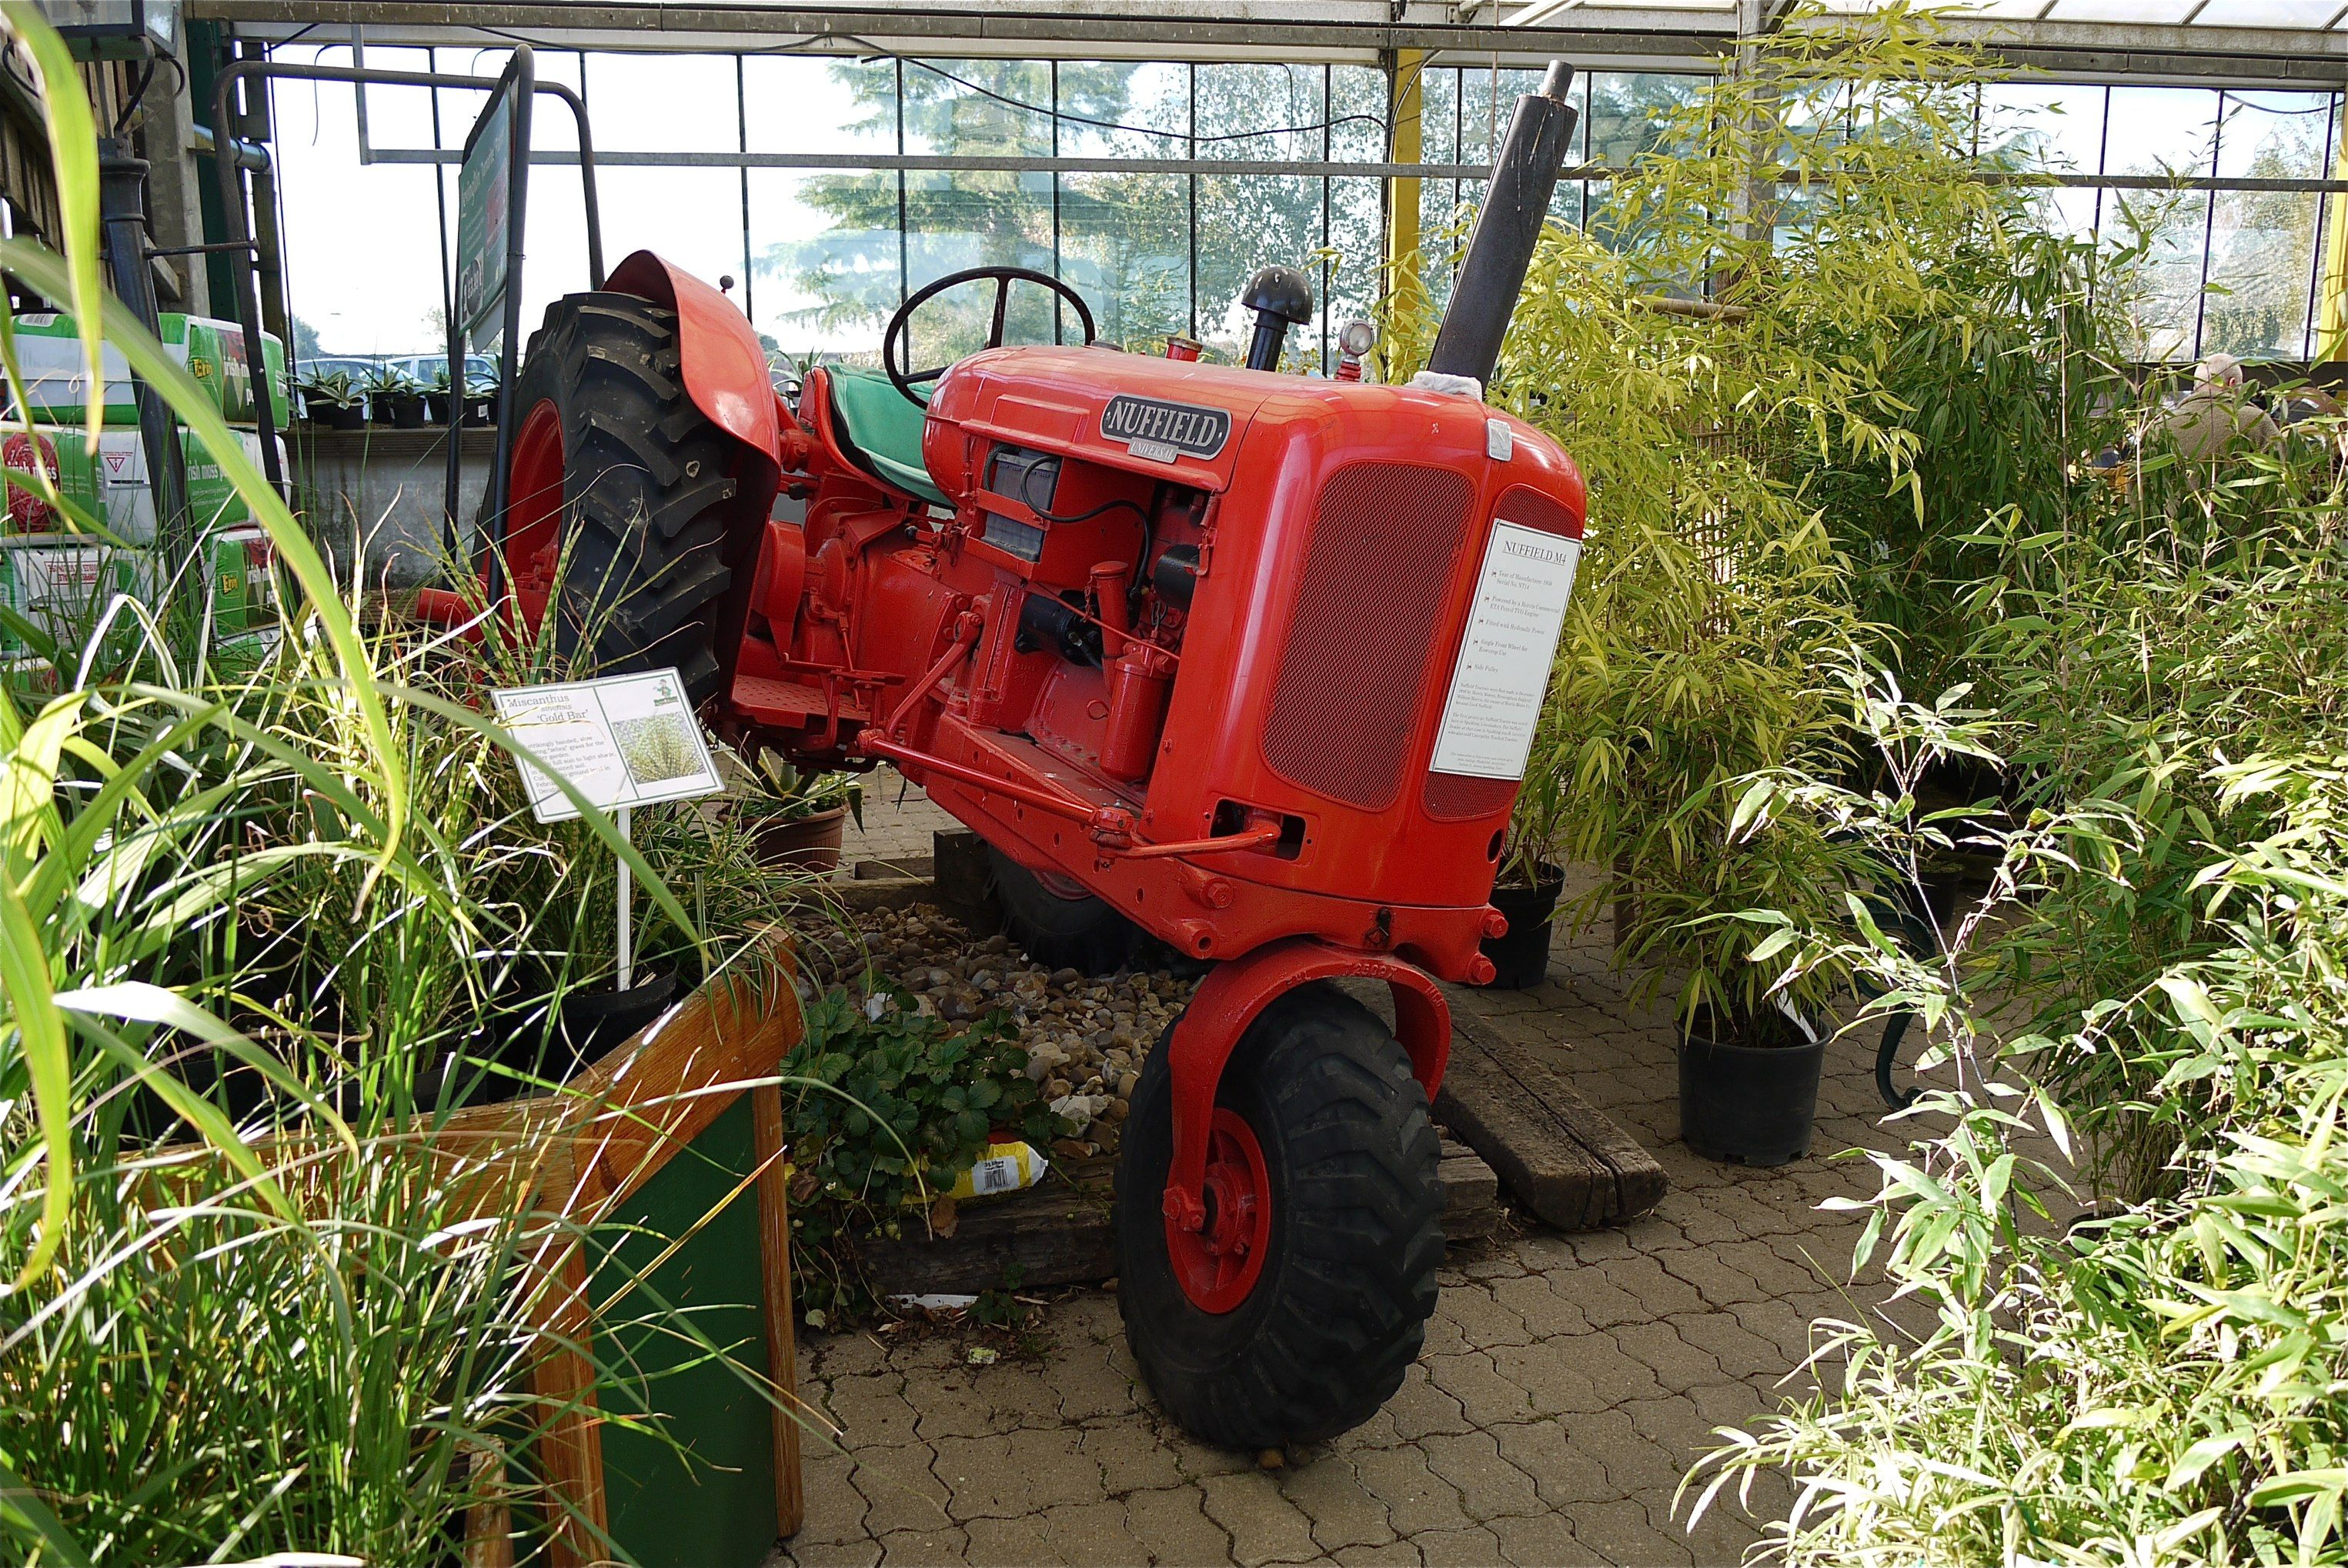 Garden ornament. Nuffield M4 Universal tractor at Baytrees Garden Centre - Flickr - mick - Lumix.jpg